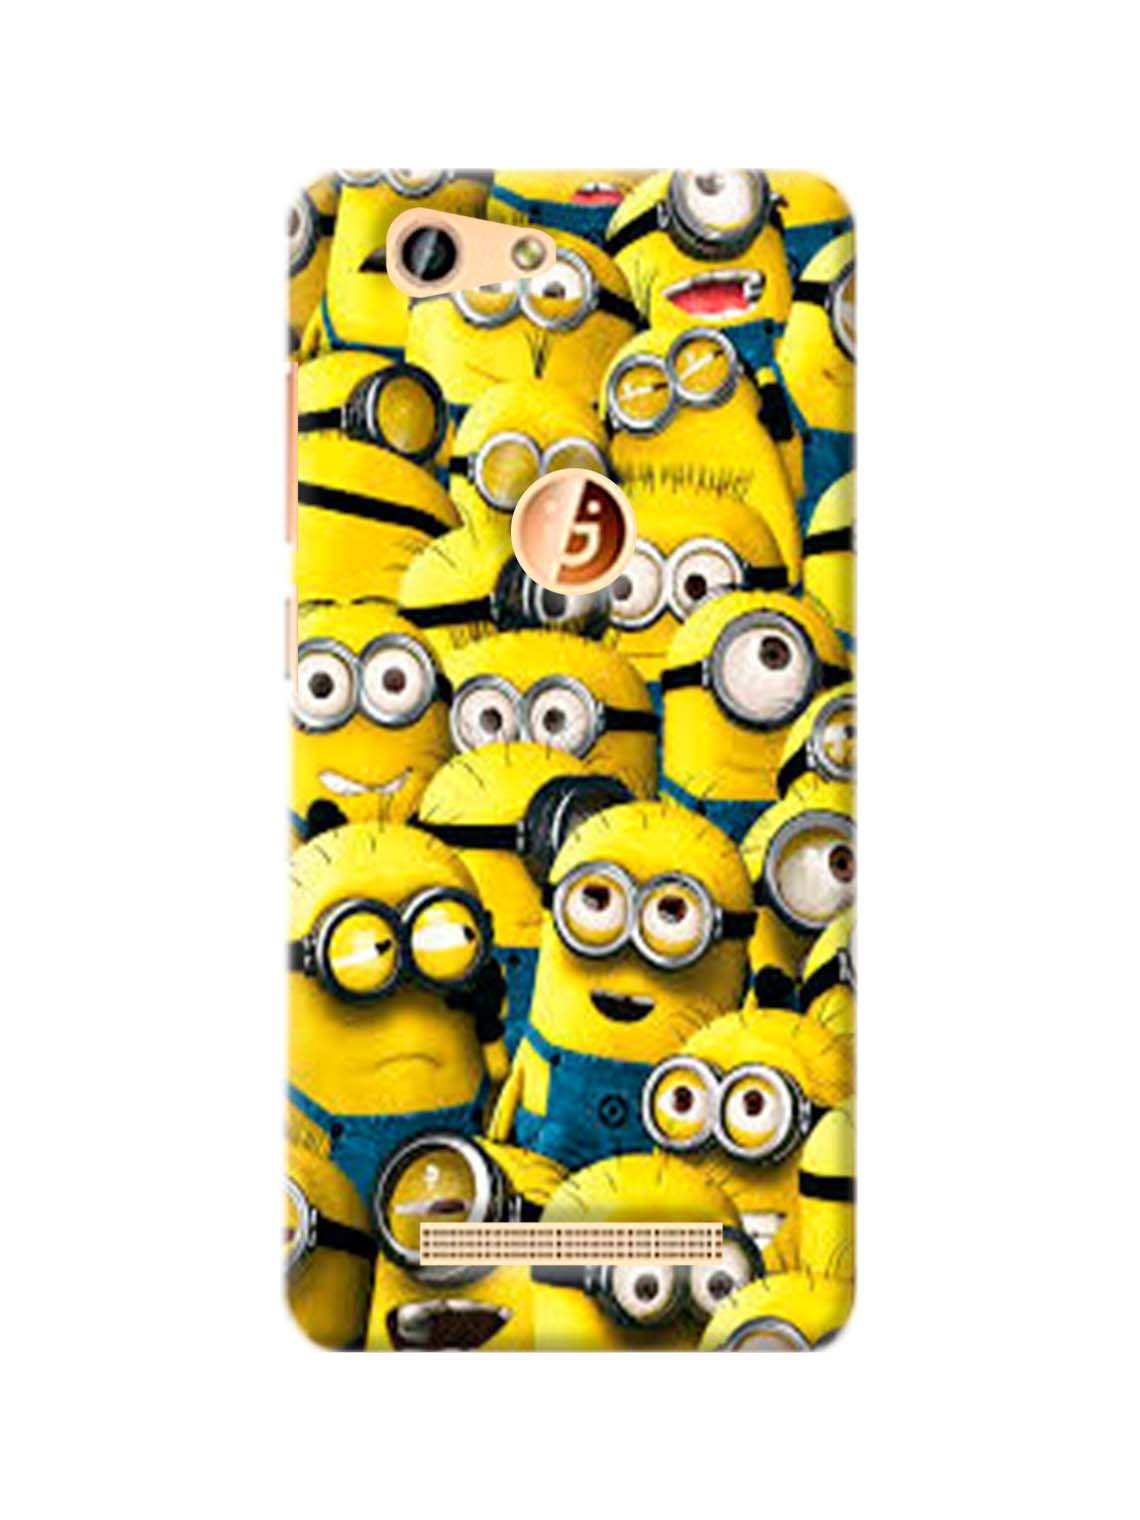 Minion Poster Printed Mobile Case For Gionee F103 Pro